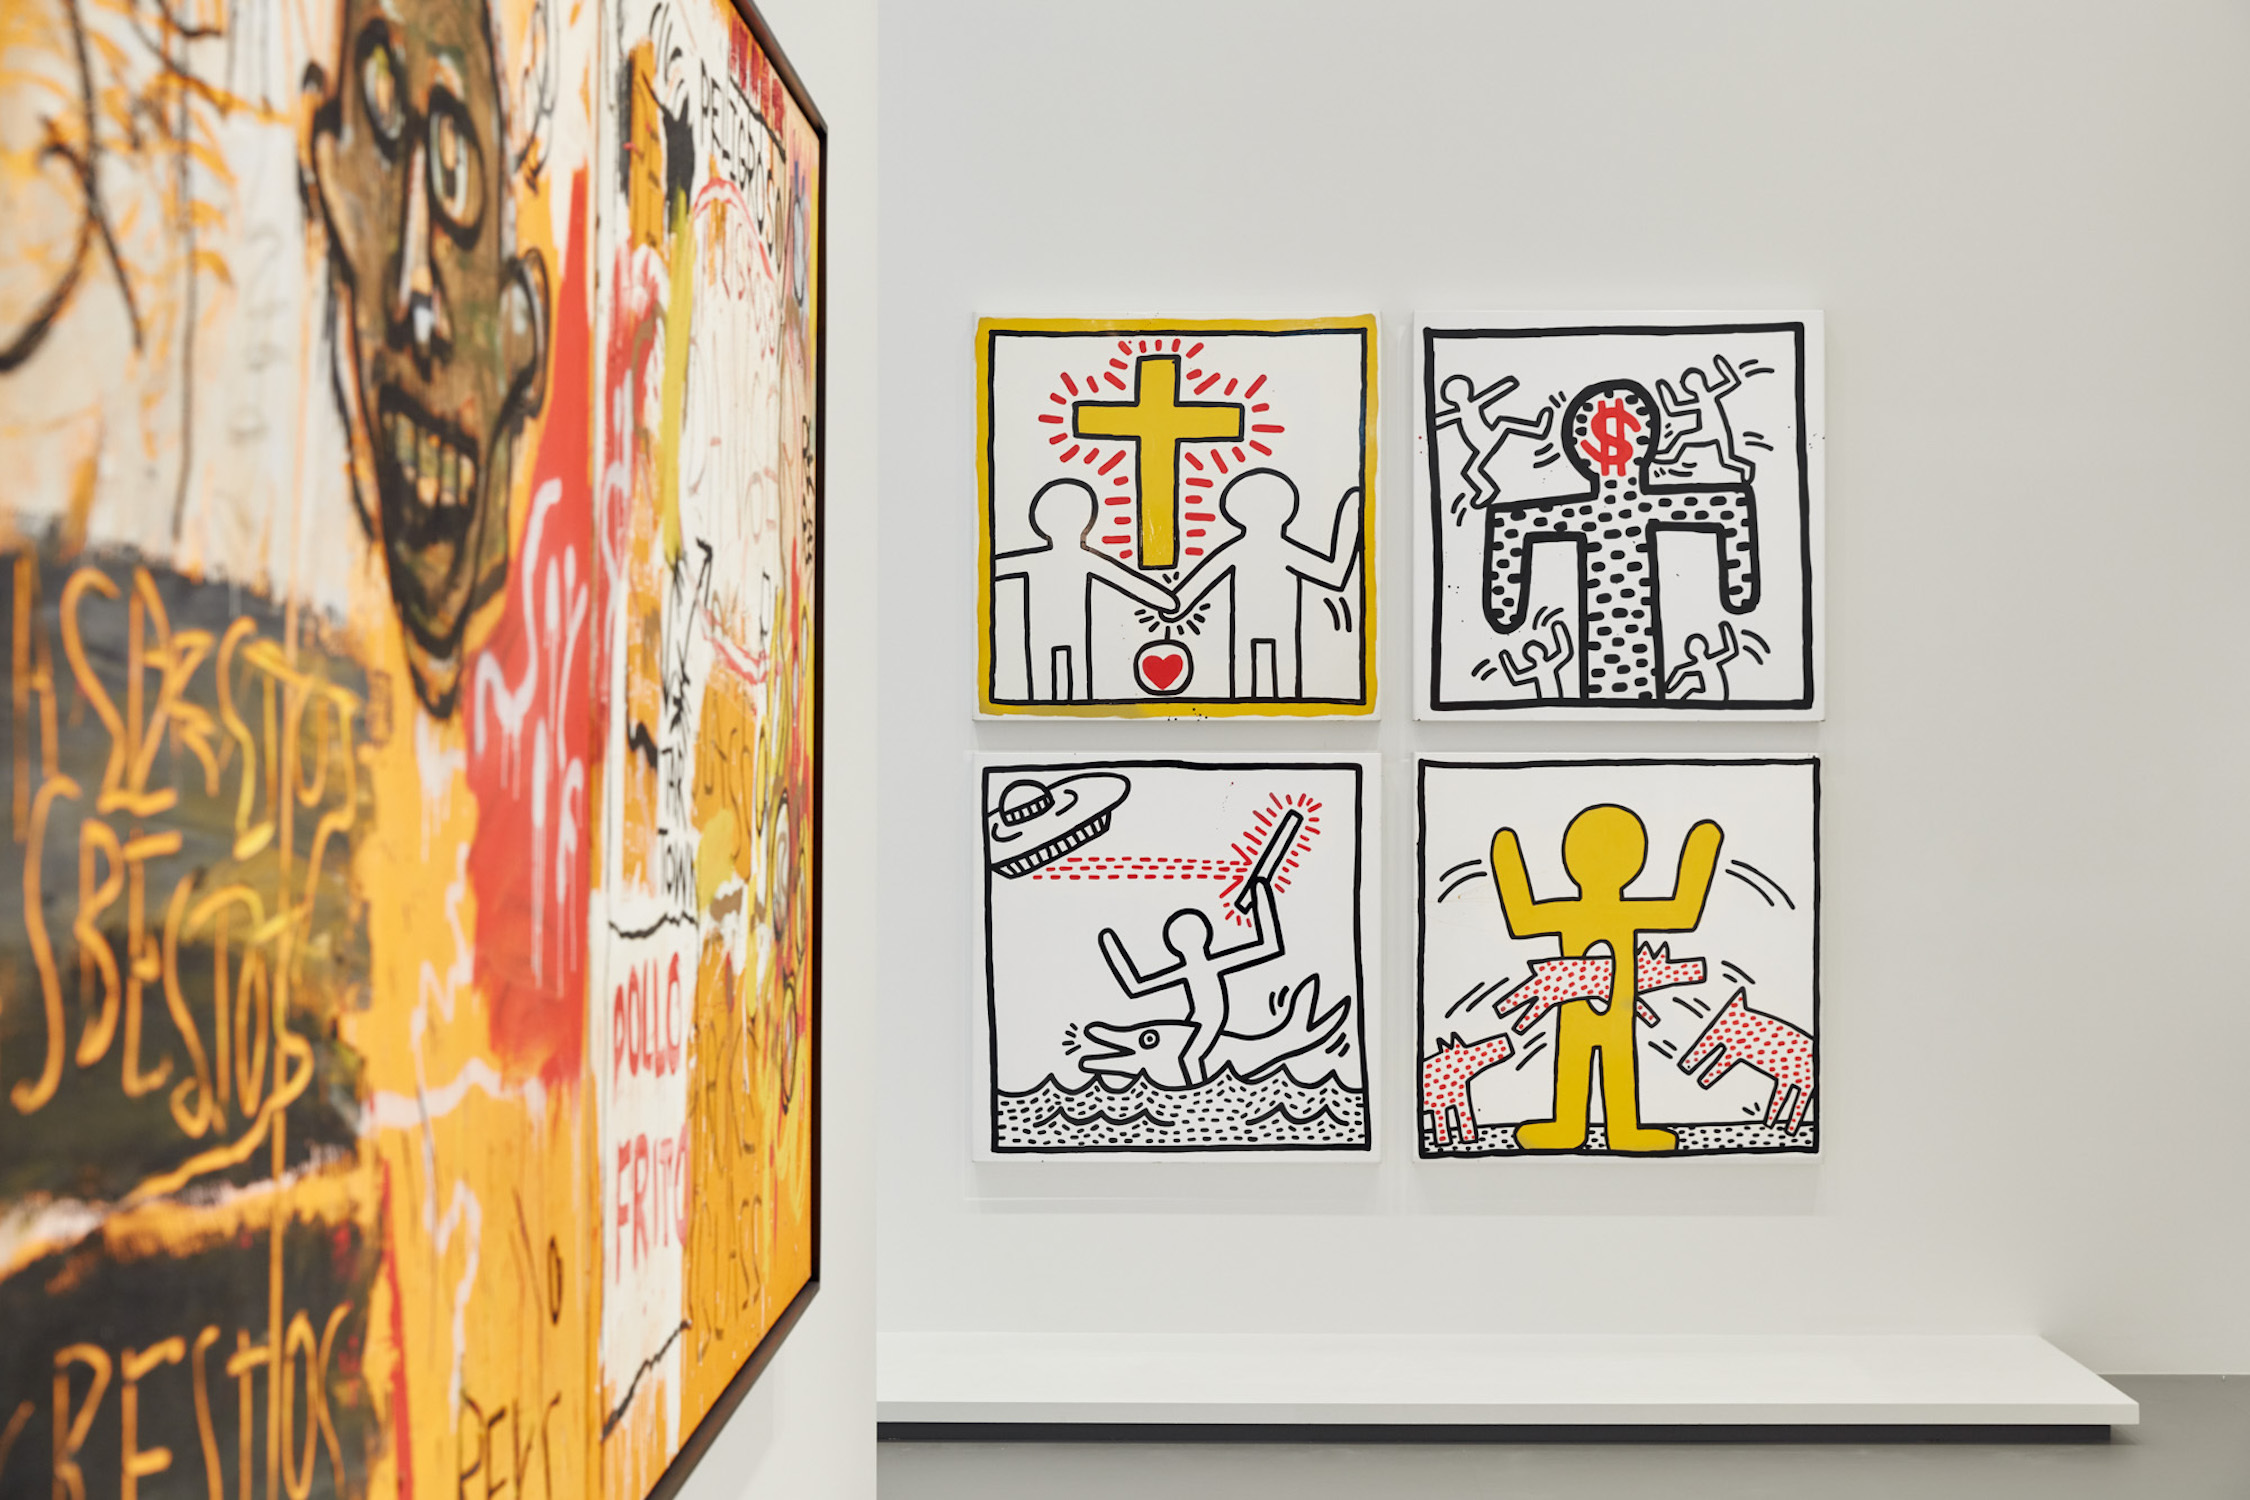 Installation view of Keith Haring | Jean-Michel Basquiat: Crossing Lines at NGV International, 1 December 219 – 11 April 2020 © Estate of Jean-Michel Basquiat. Licensed by Artestar, New York © Keith Haring Foundation